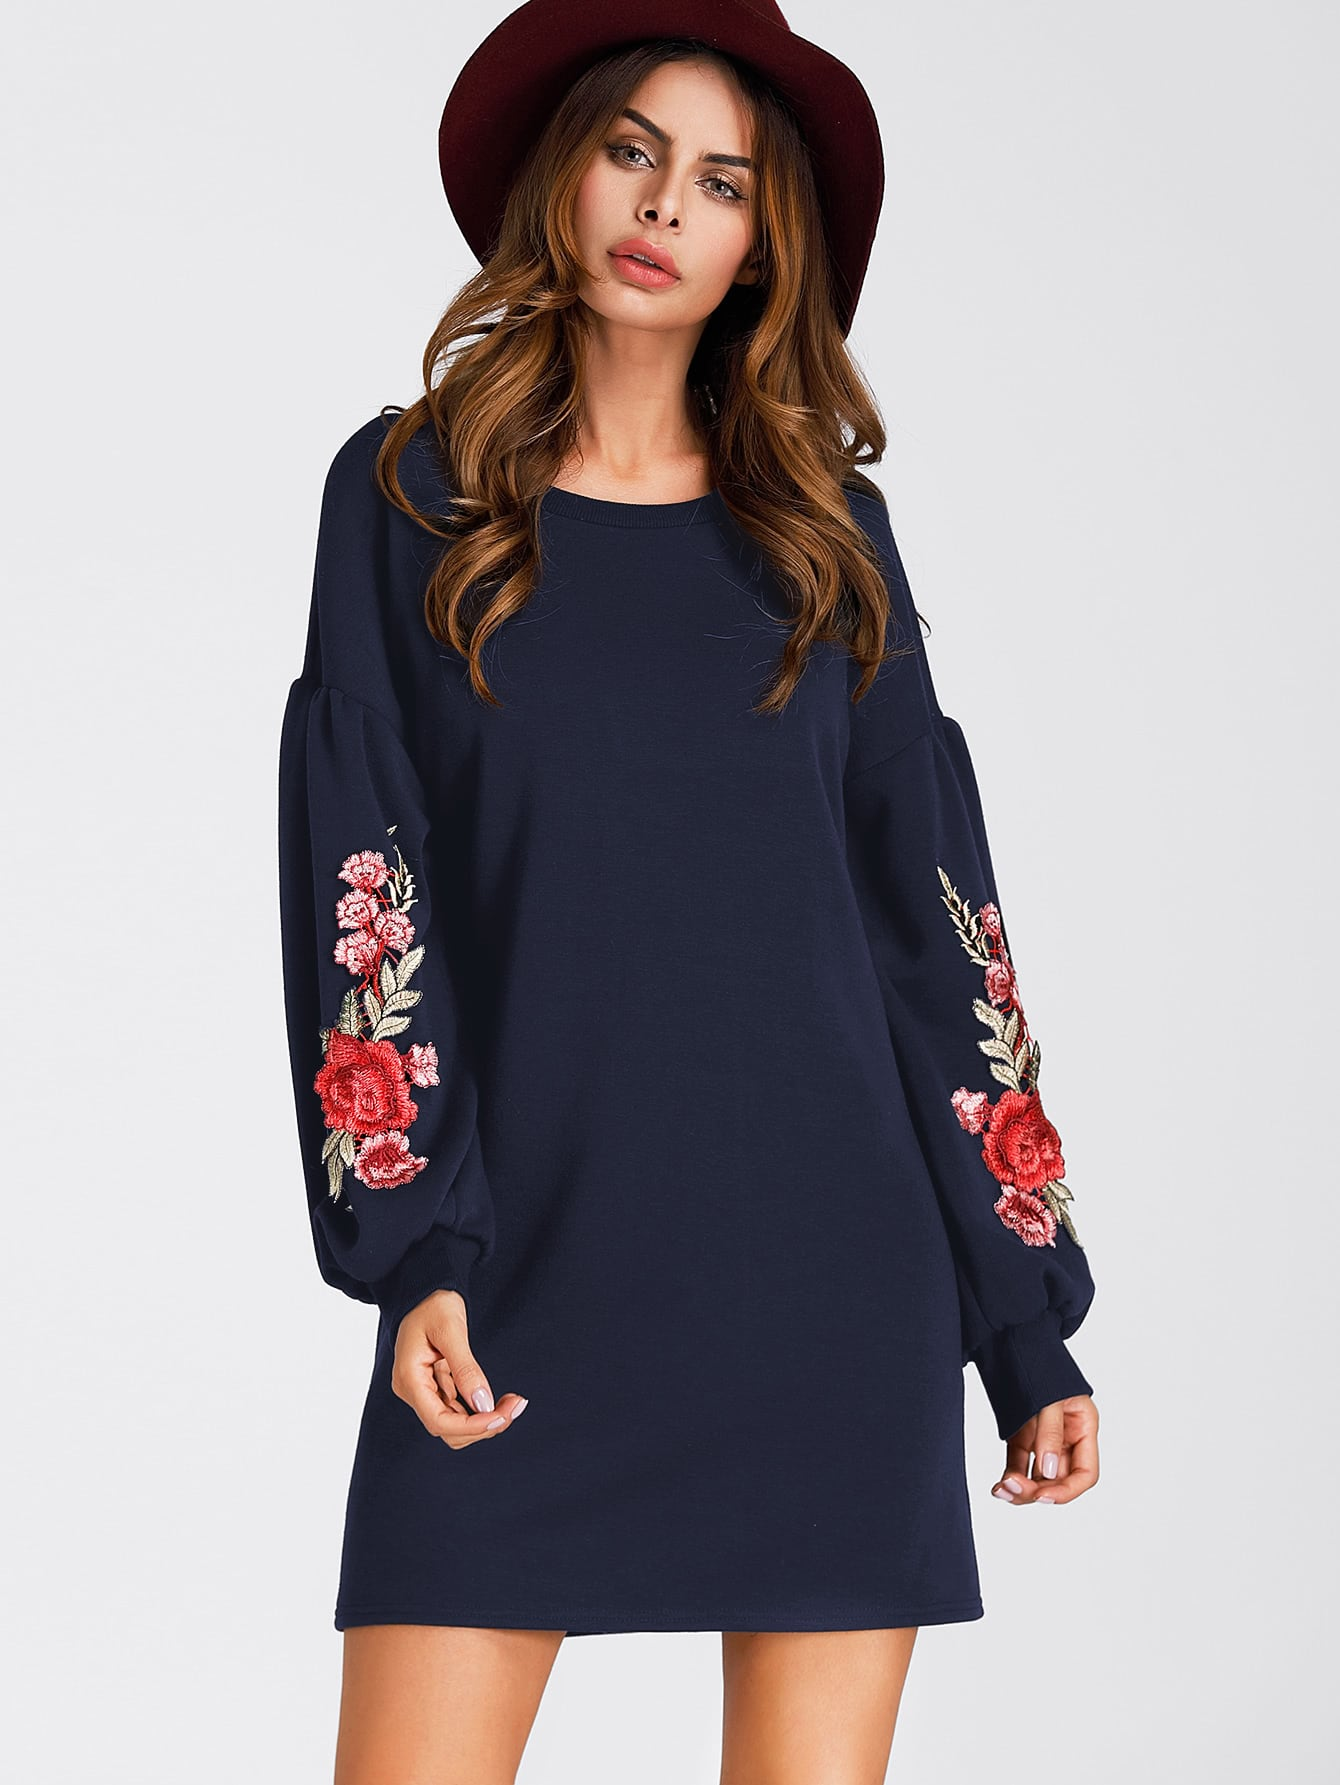 Embroidered Appliques Balloon Sleeve Dress foldover neckline embroidered appliques sweatshirt dress